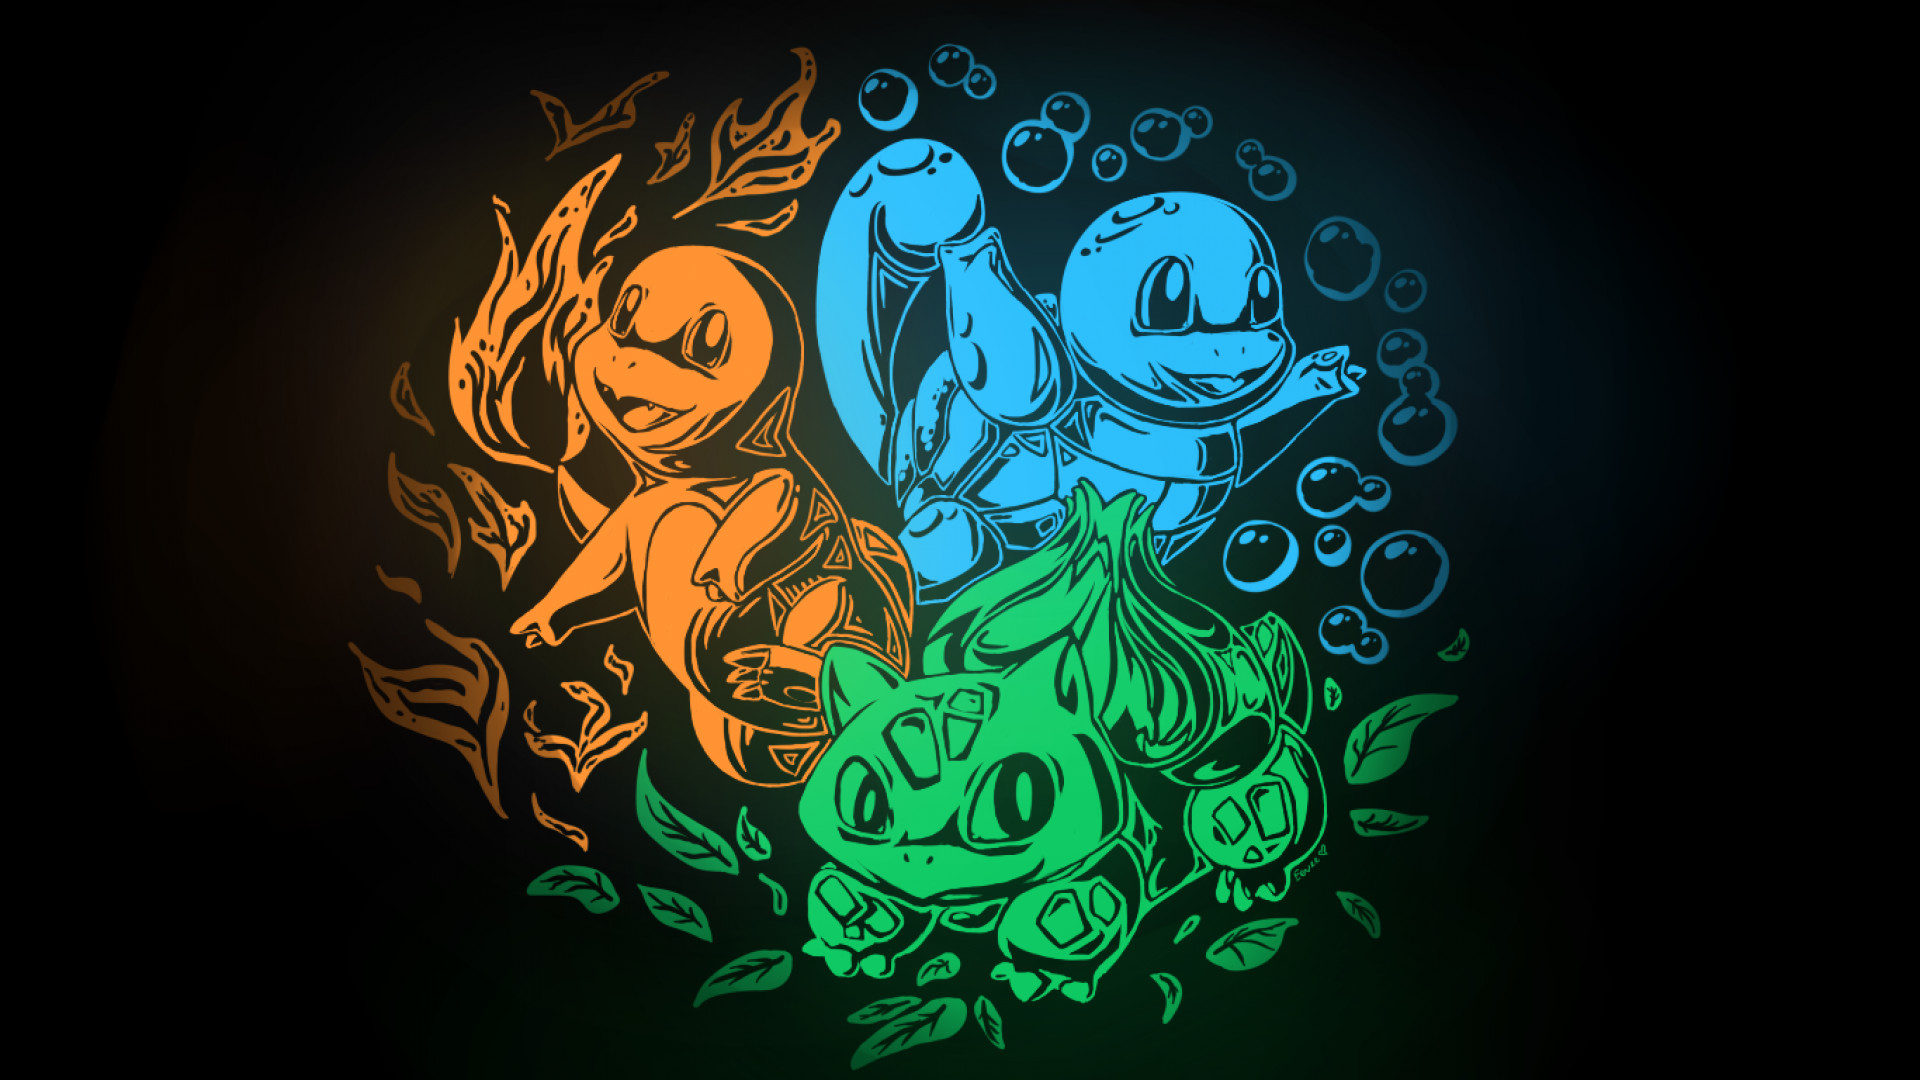 Res: 1920x1080, SimplyWallpapers.com: Bulbasaur Charmander Pokemon Squirtle kanto .